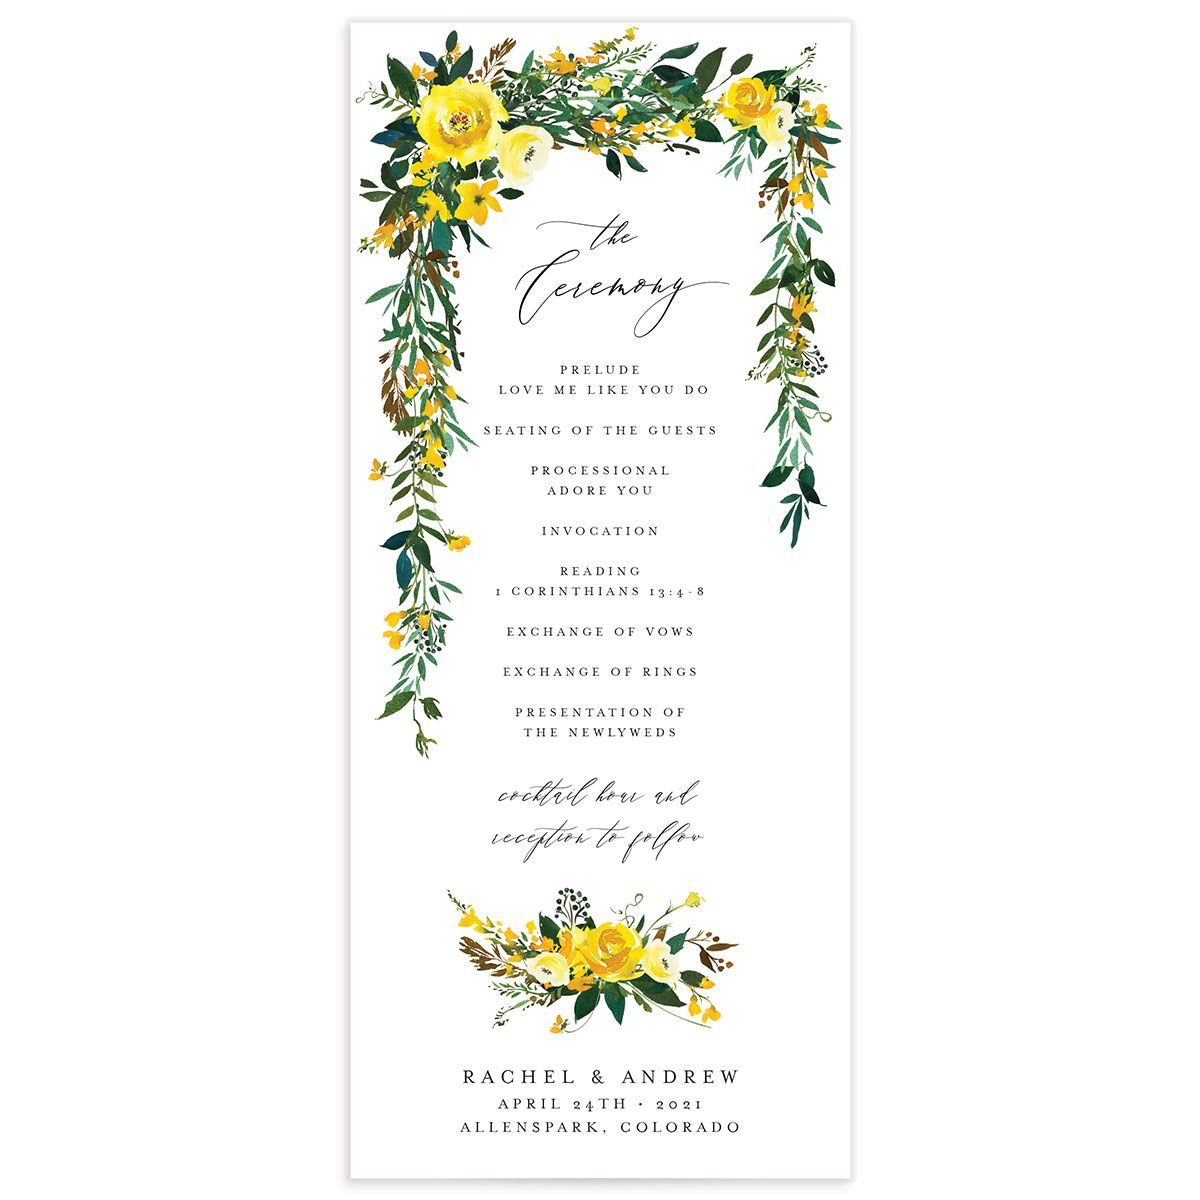 Cascading Altar wedding programs in yellow